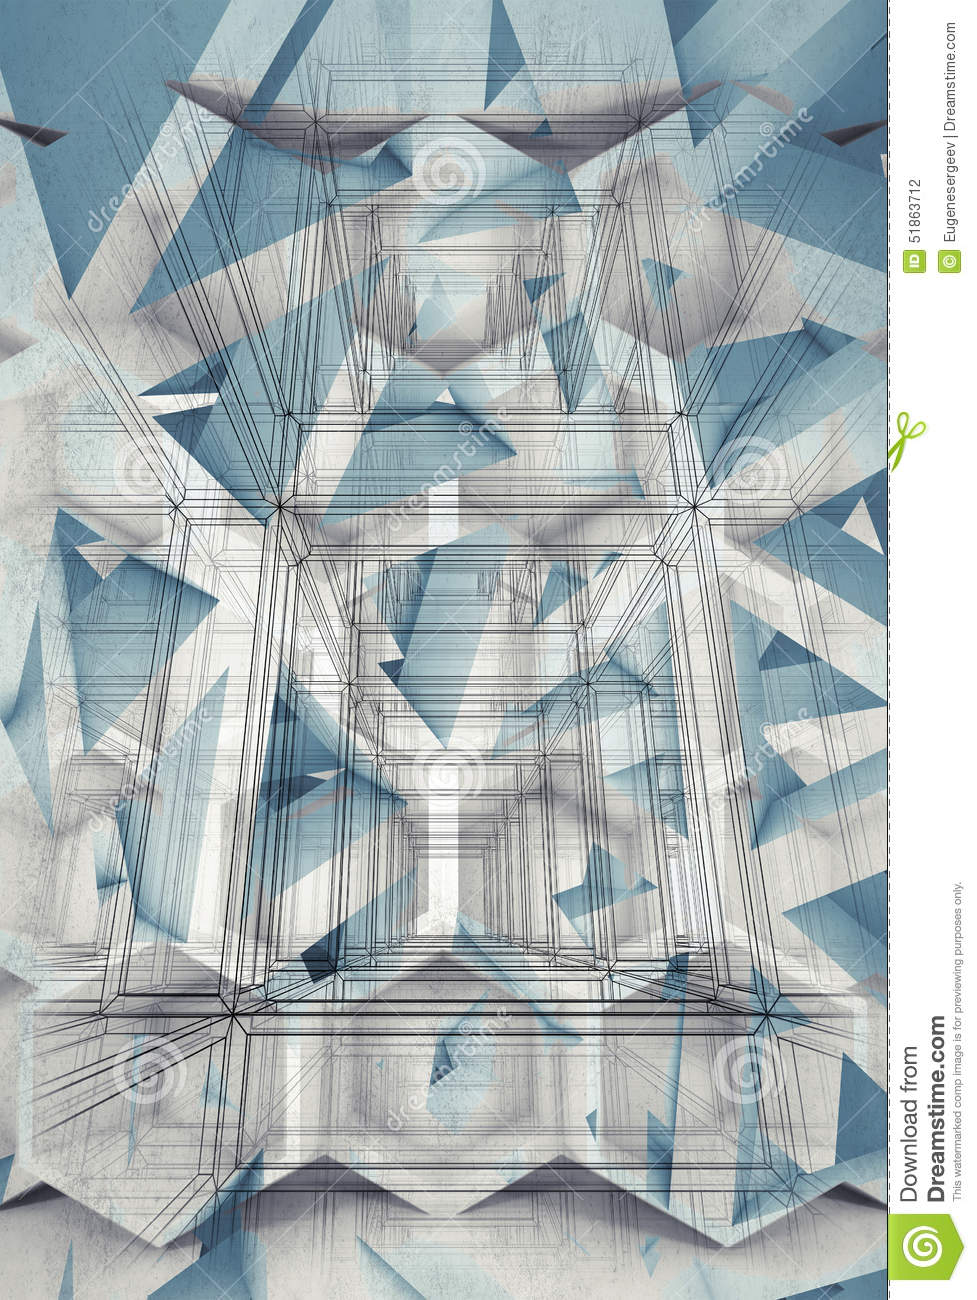 Abstract construction on old paper 3d illustration stock download abstract construction on old paper 3d illustration stock illustration illustration of digital malvernweather Images